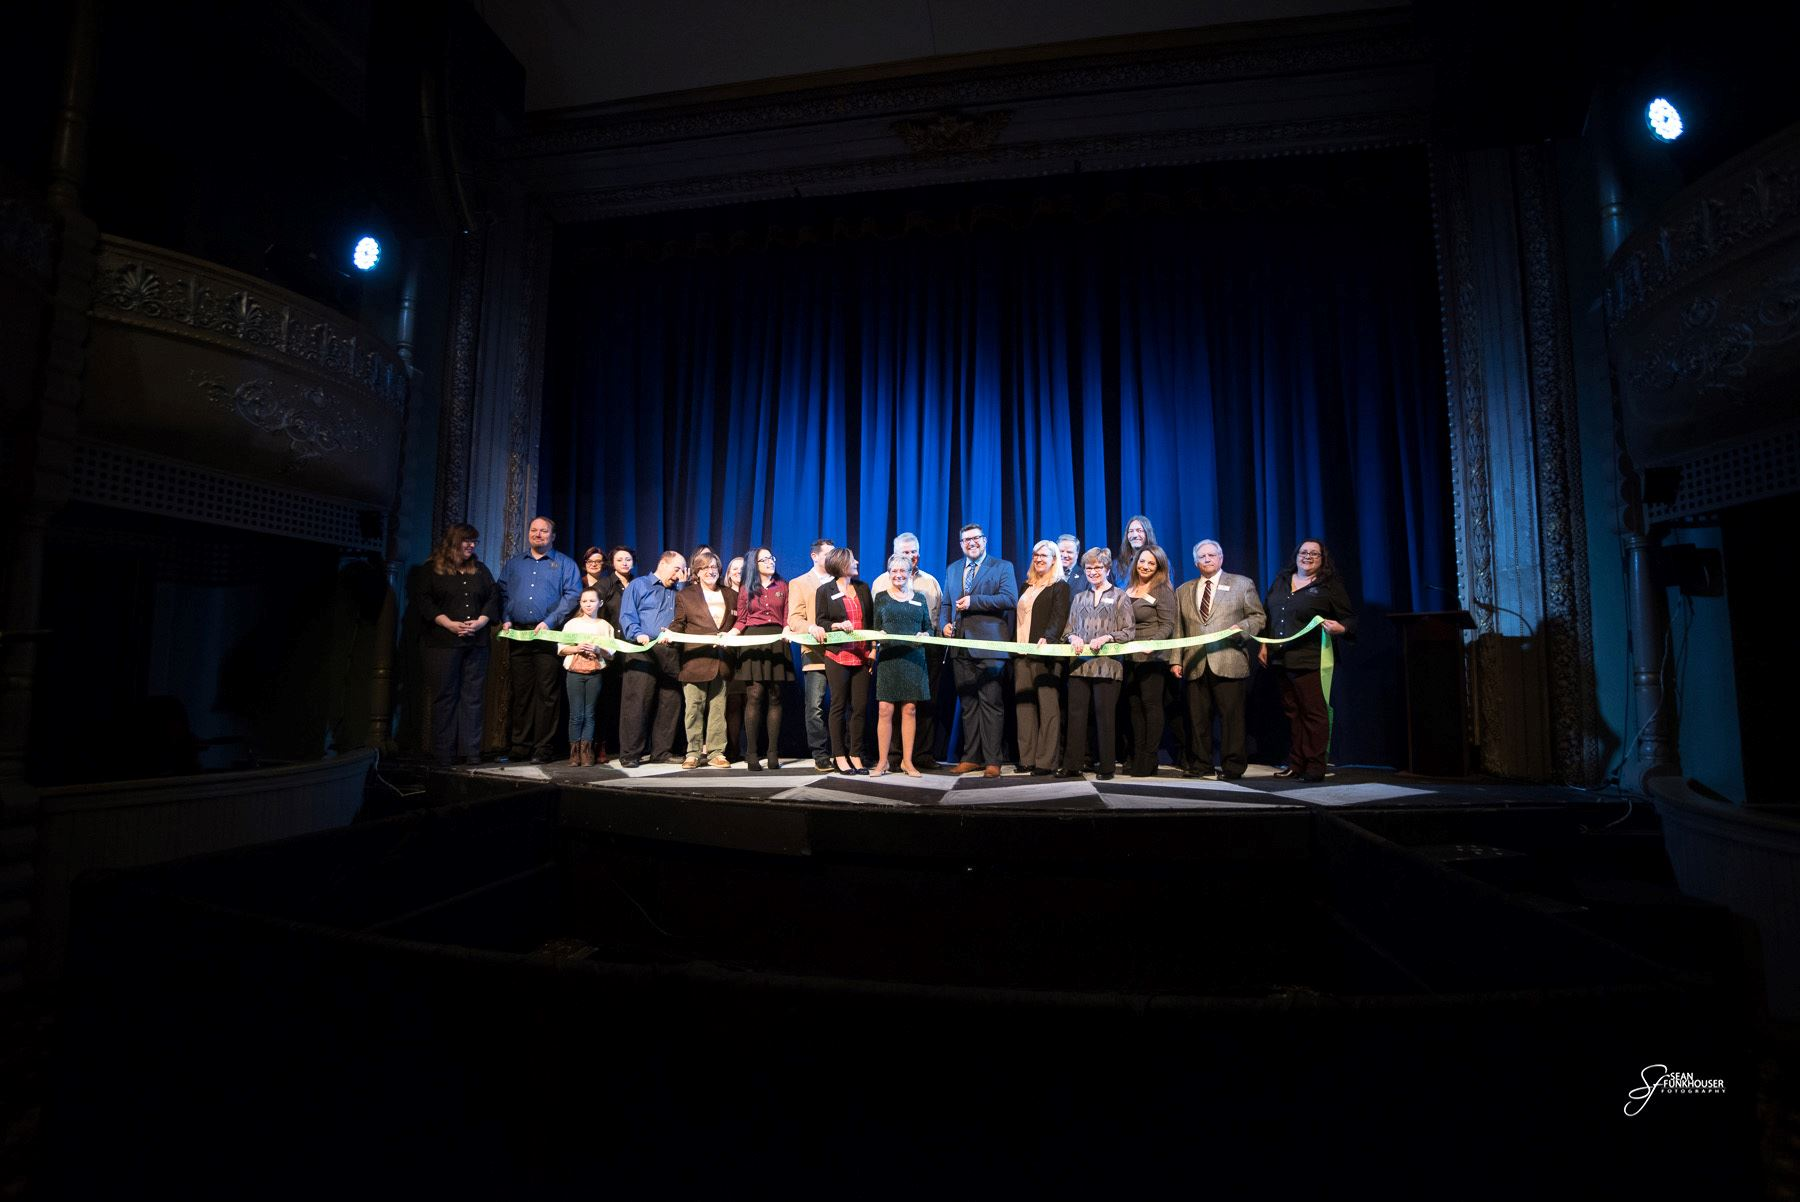 Photo from the February 15 Grand Re-Opening of the Memorial Opera House celebrating our 125th annive